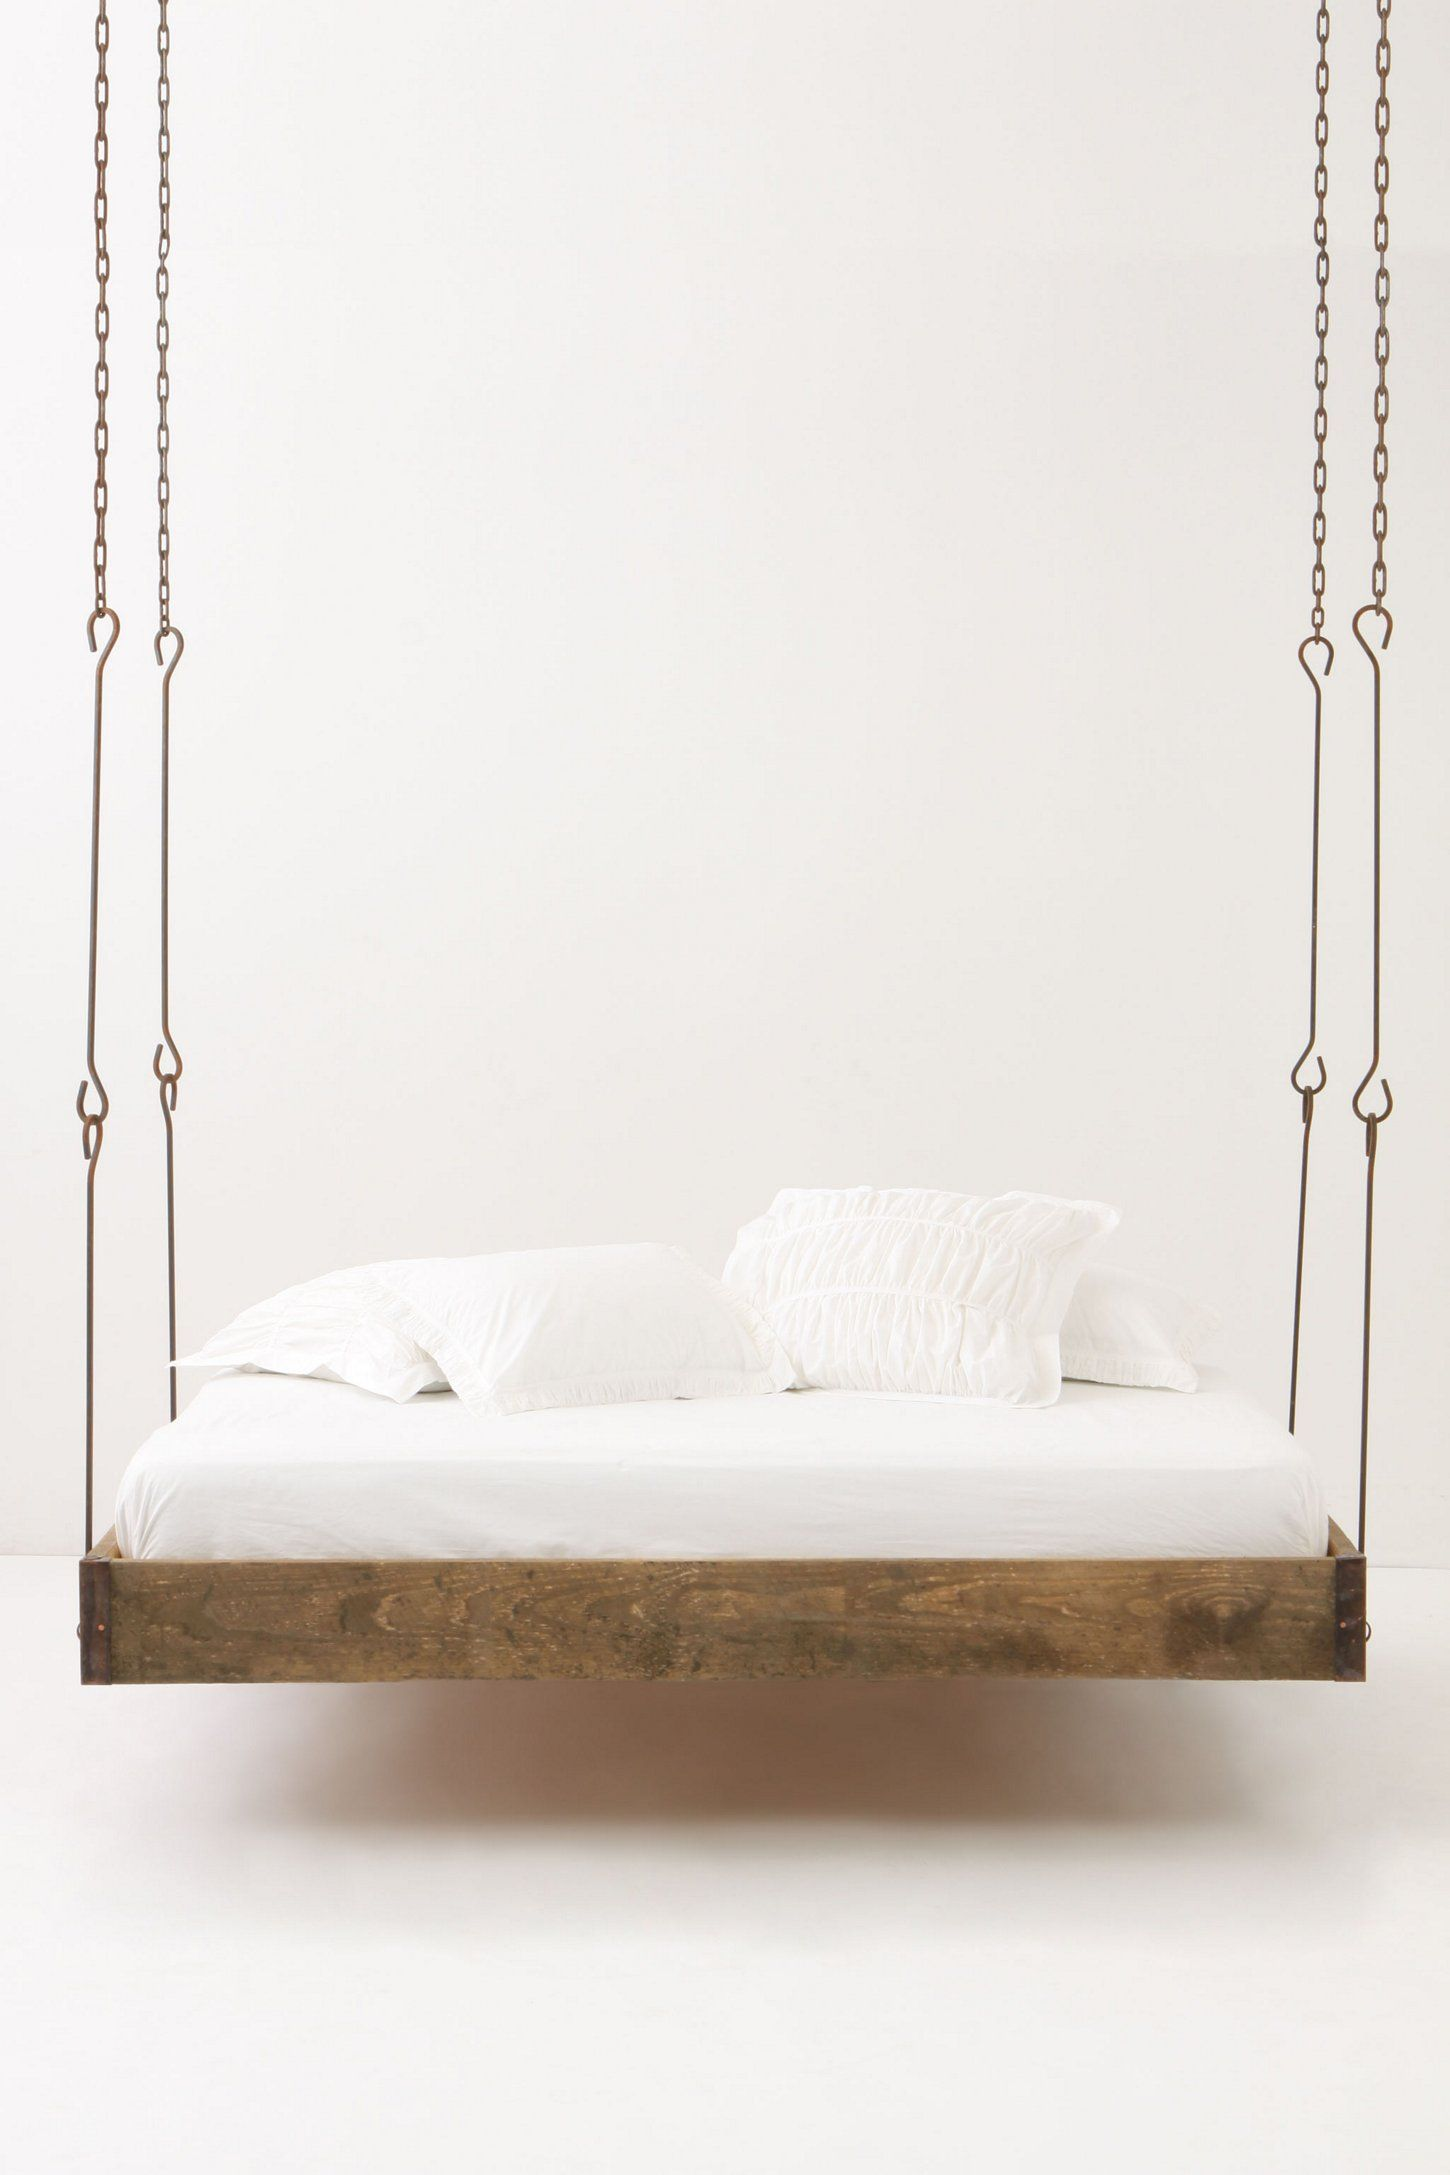 Hanging bed my style pinterest hanging beds beds and log cabins